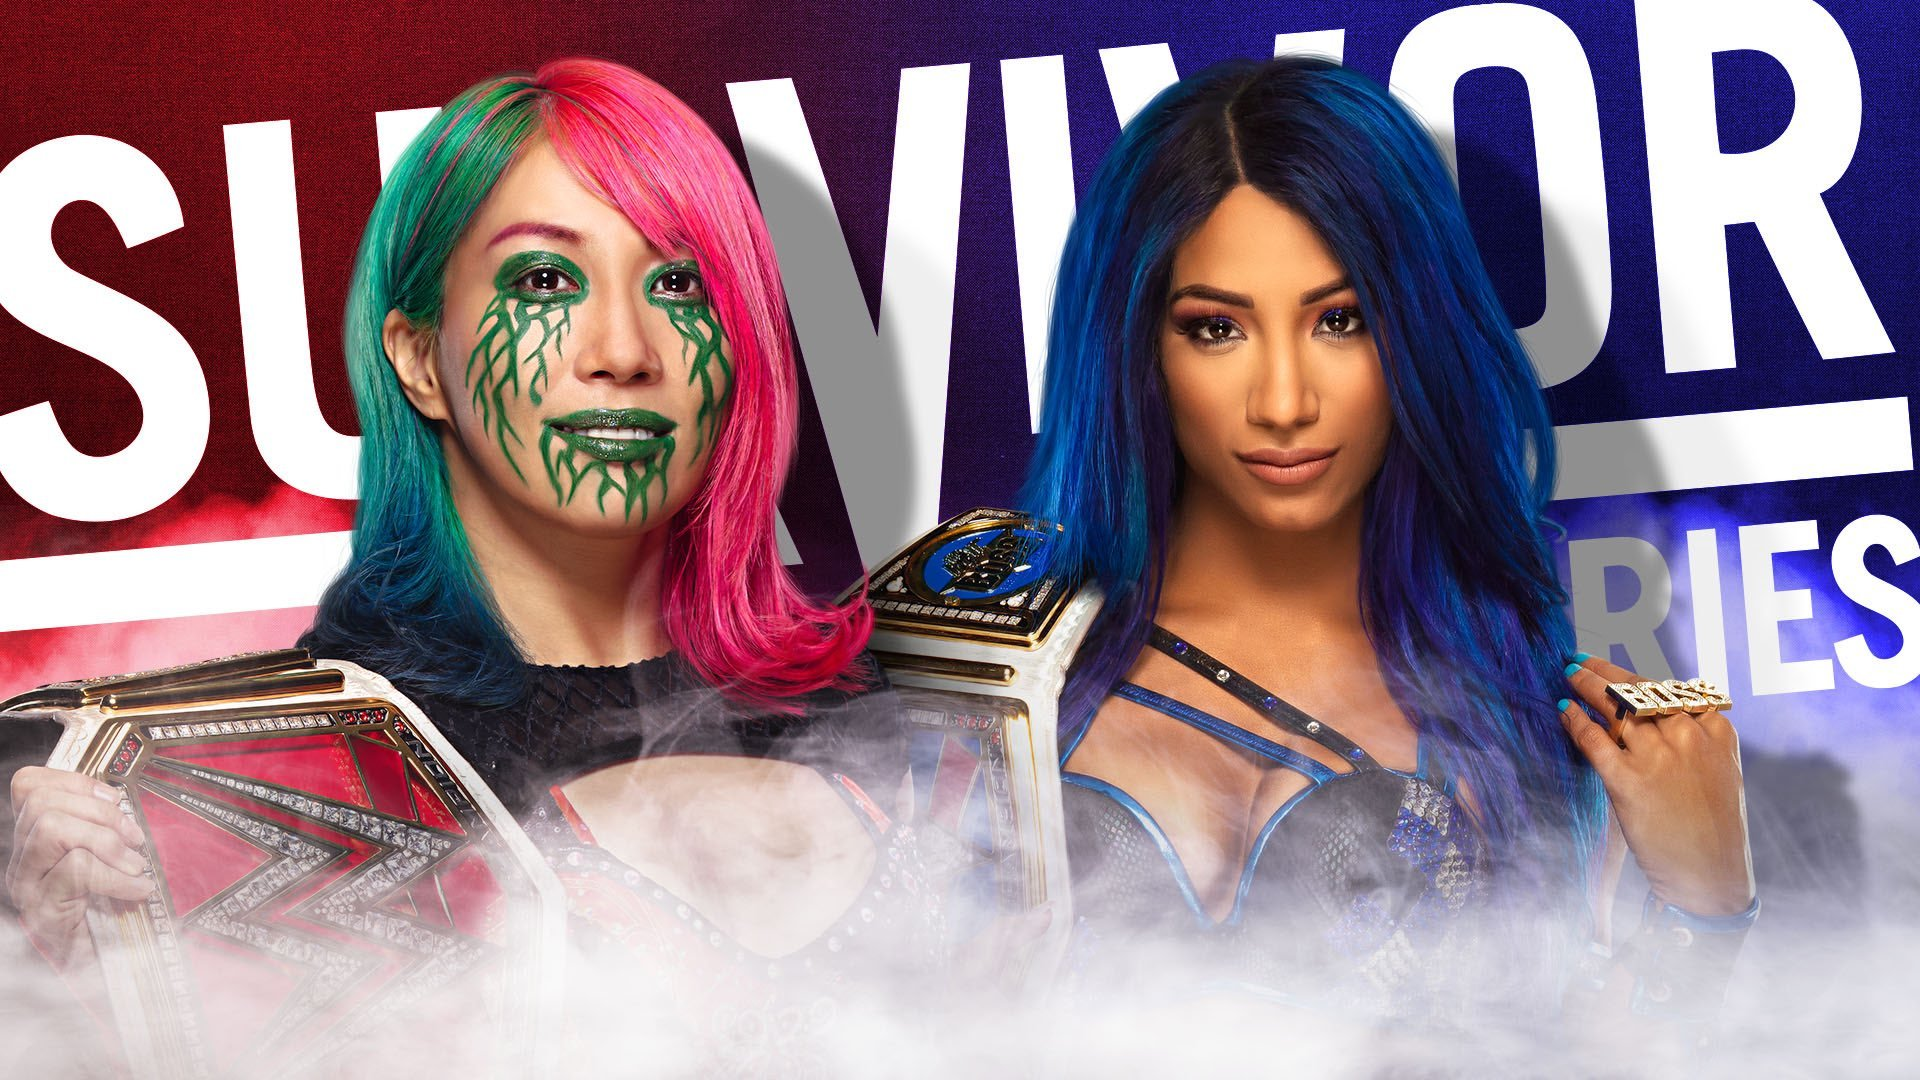 All you need to know ahead of this Sunday's Survivor Series show in Florida